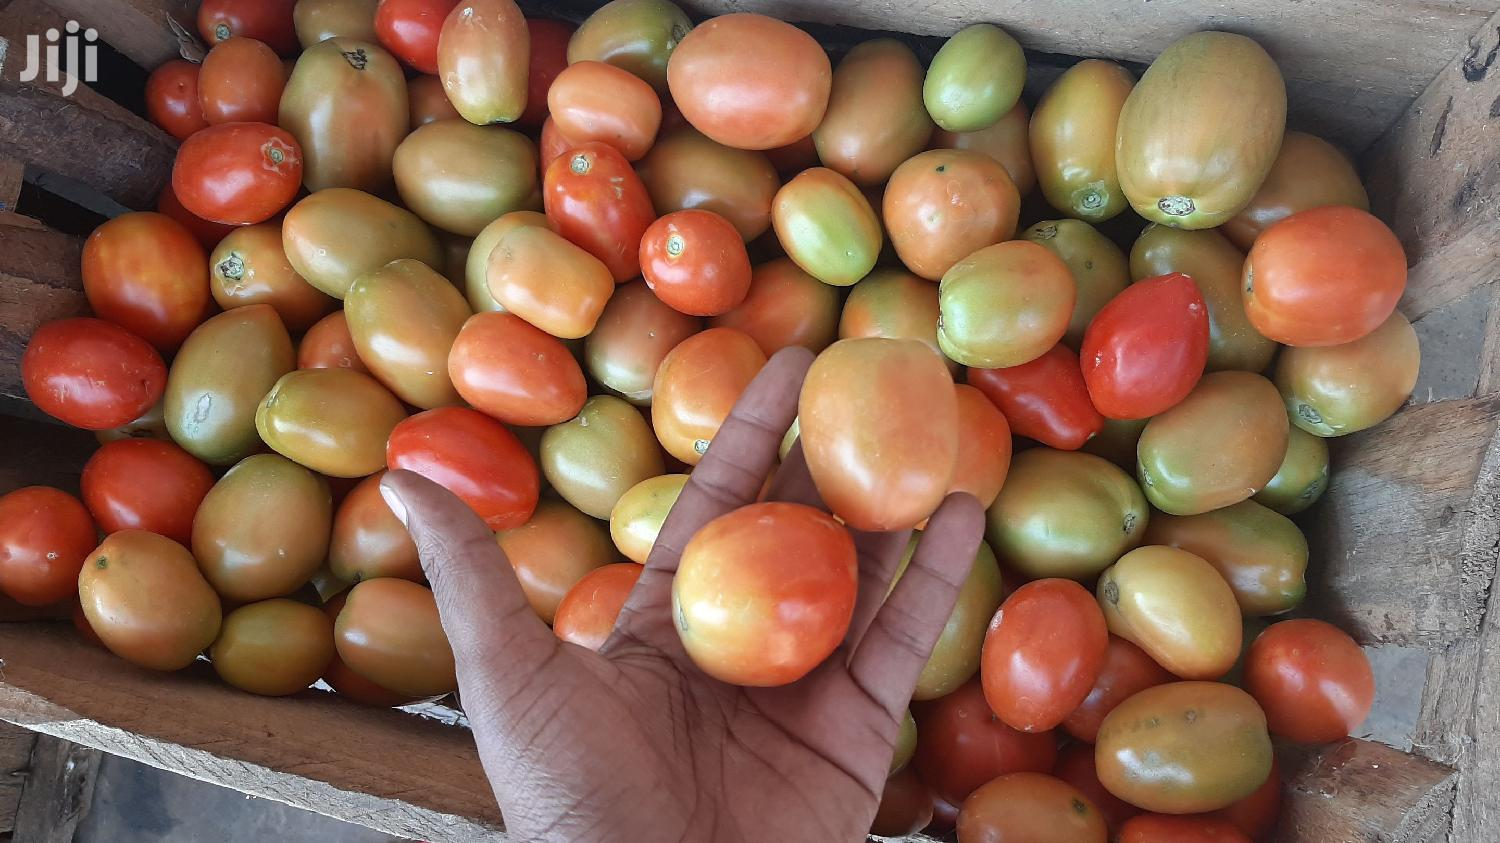 Archive: Tomatoes For Sale